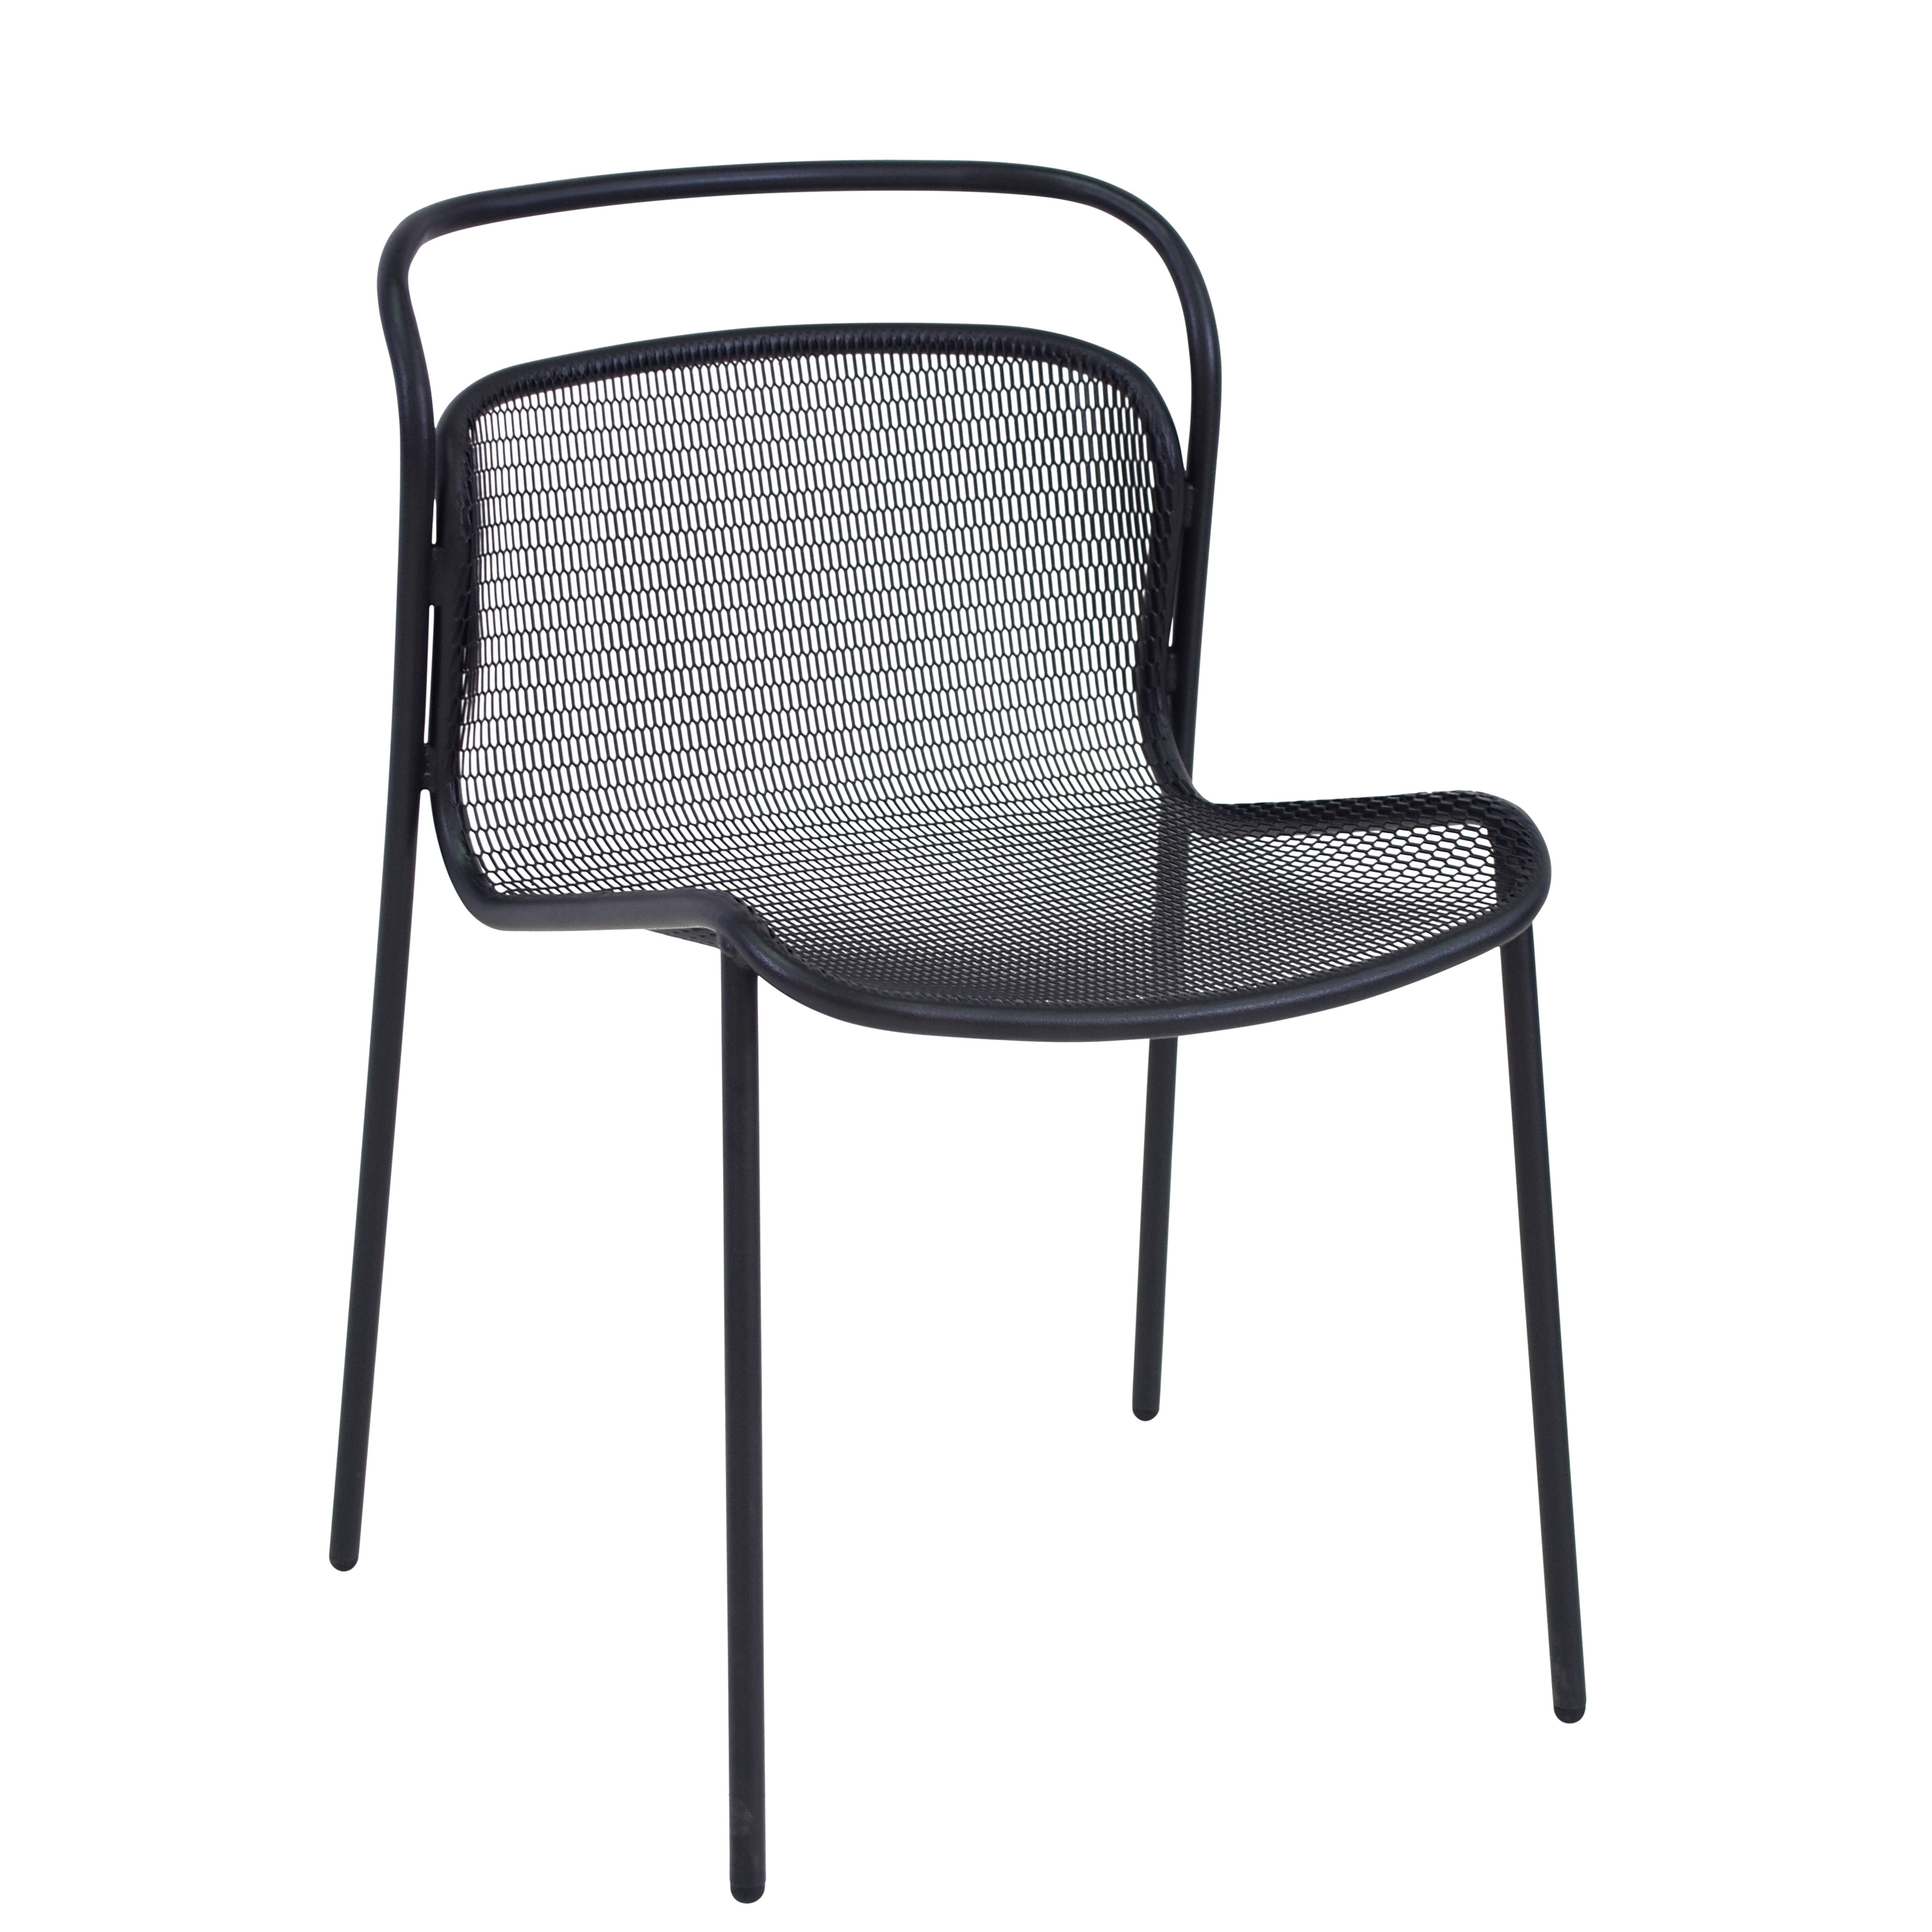 emuamericas, llc 634 chair, side, stacking, outdoor